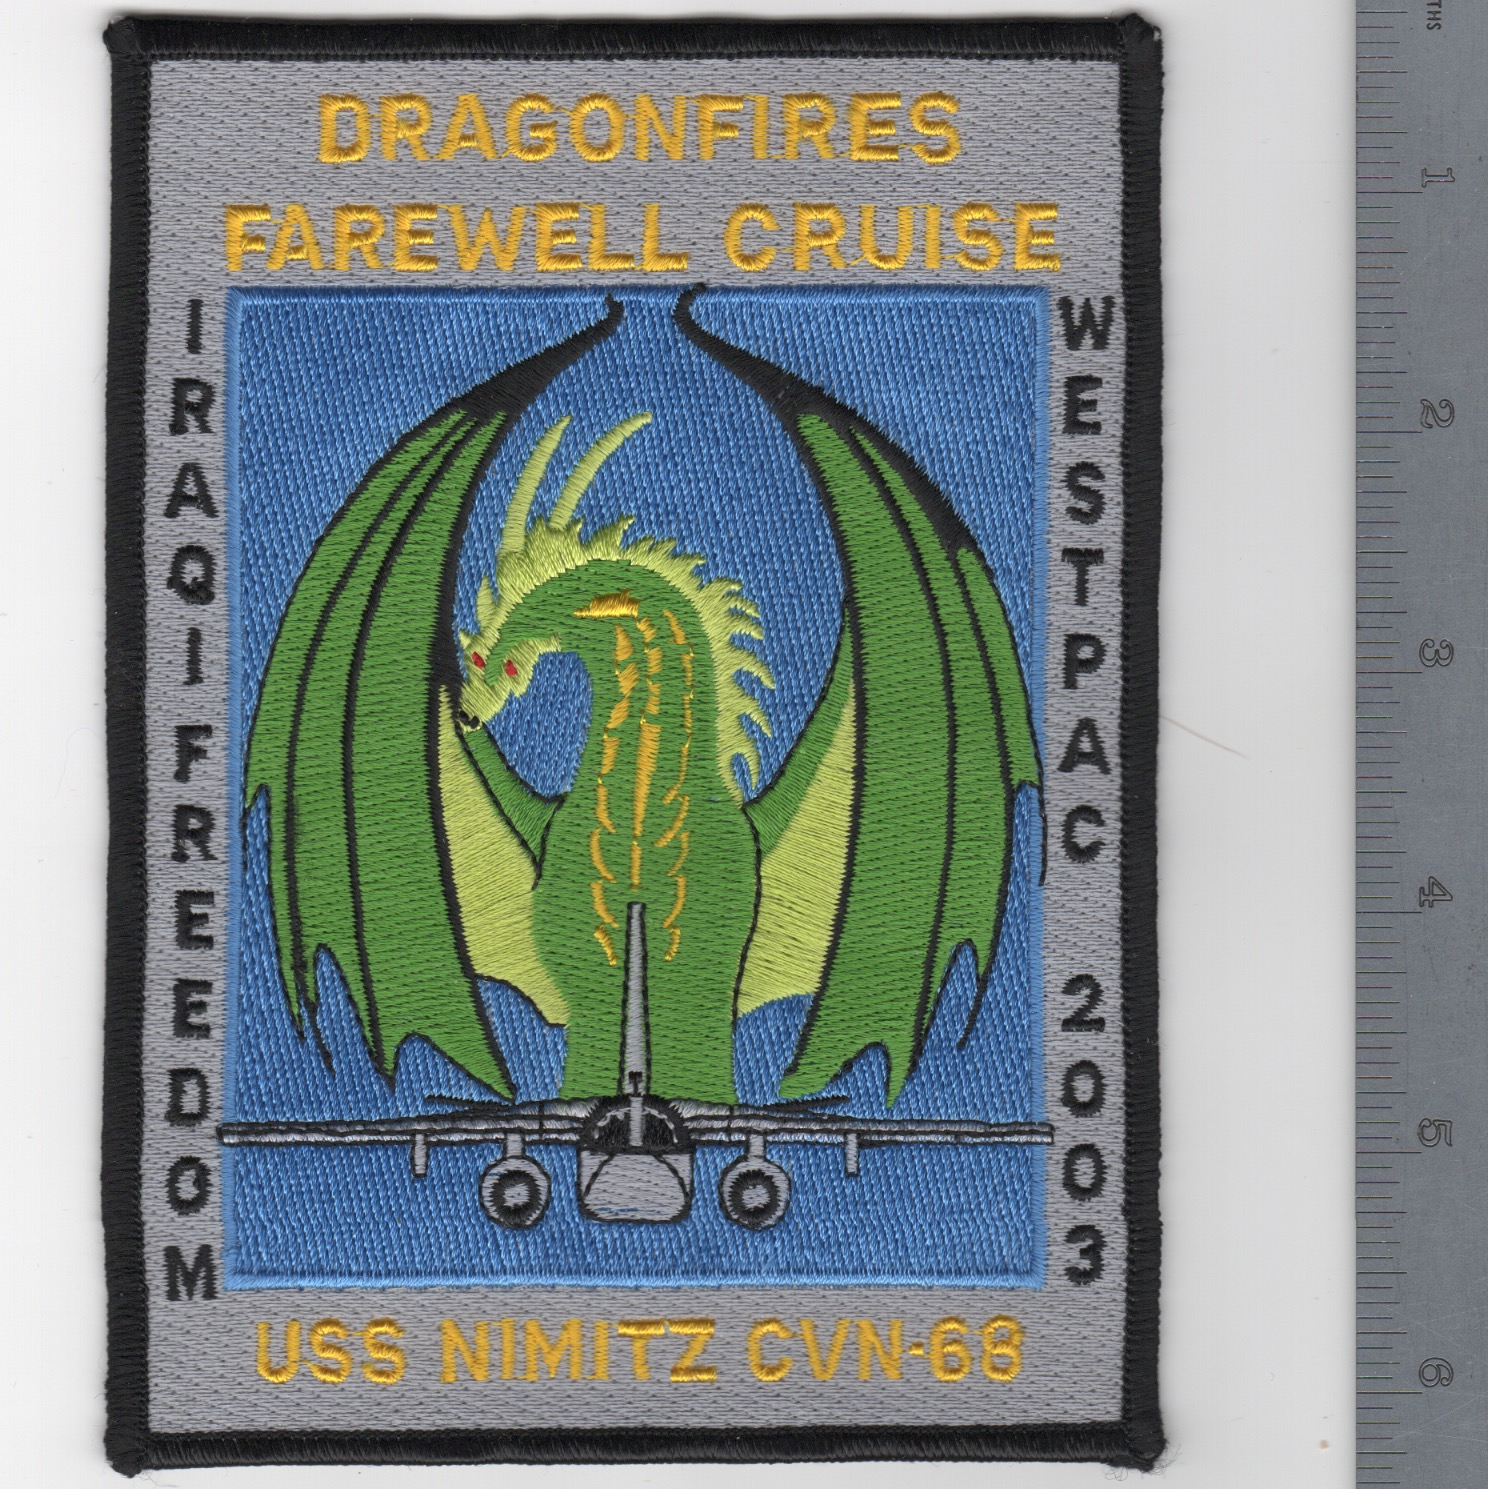 465) CVN-68 'DRAGONS FAREWELL' Cruise Patch